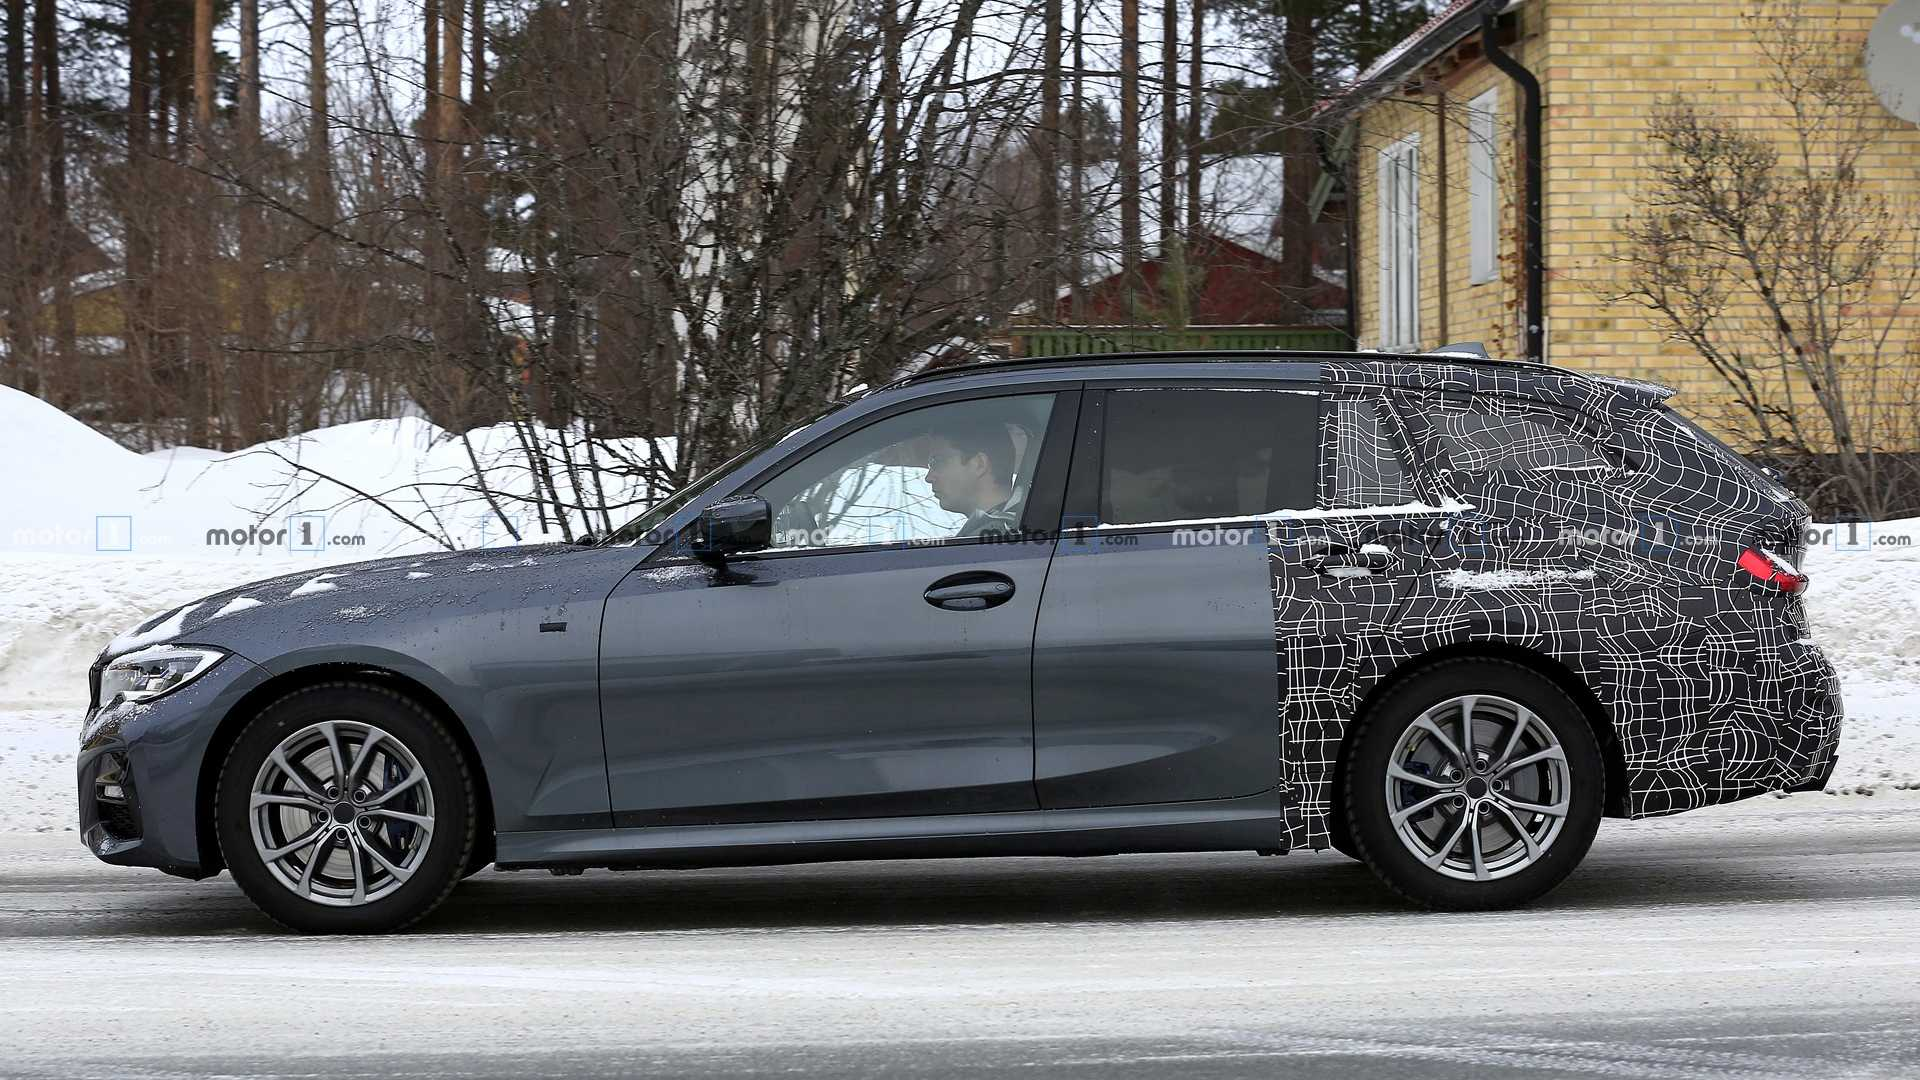 44 Best Review New BMW 3 Series Touring 2020 Overview for New BMW 3 Series Touring 2020